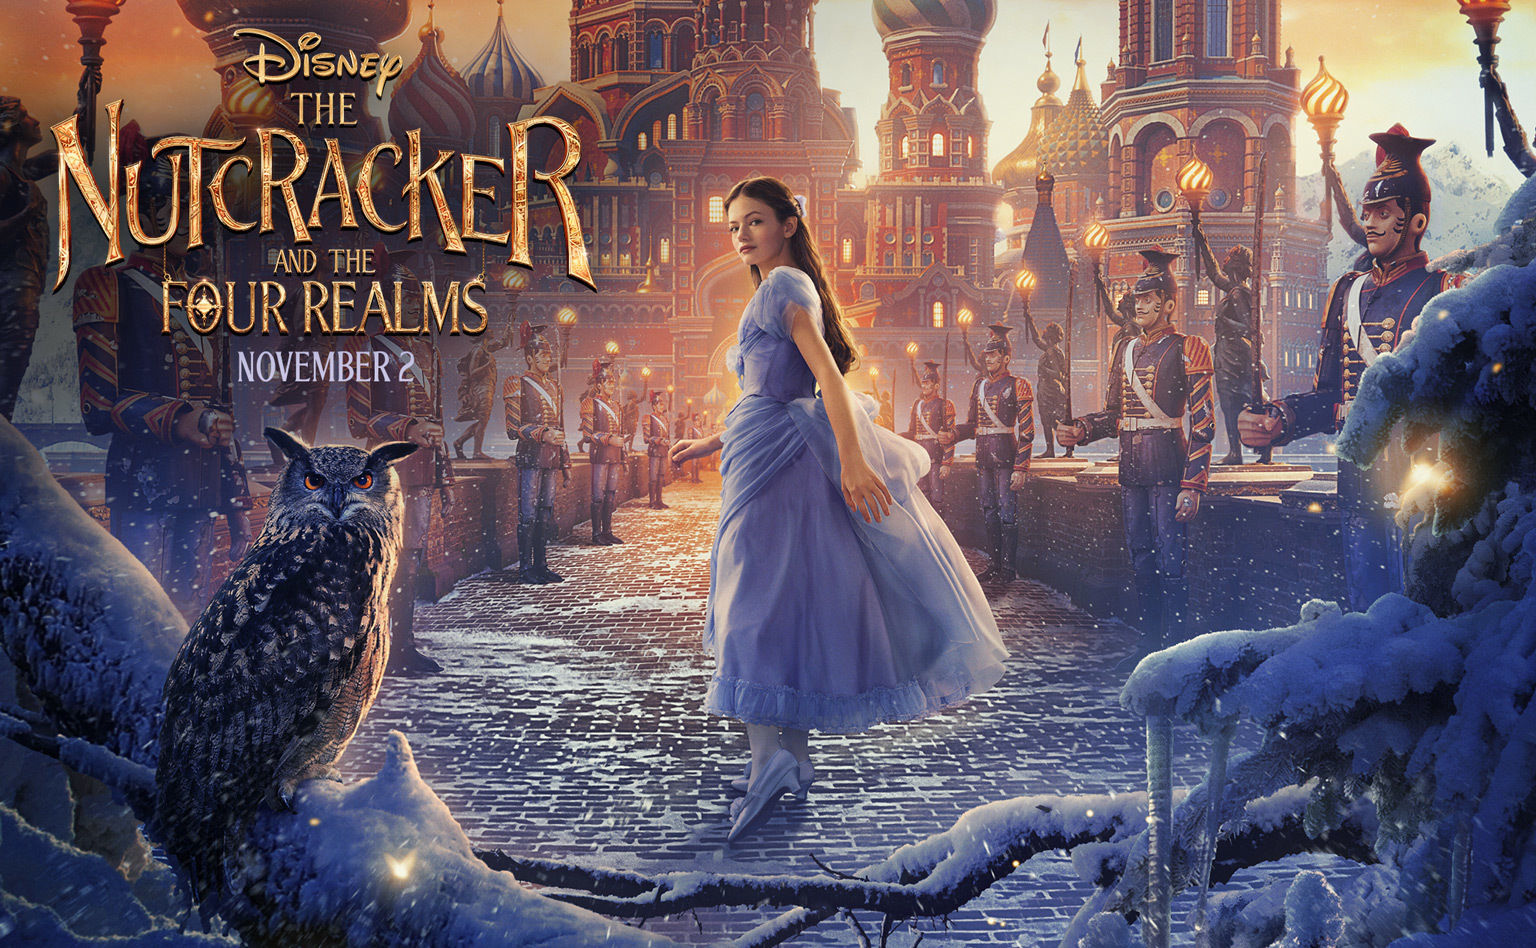 Win Tickets to See Disney's THE NUTCRACKER AND THE FOUR